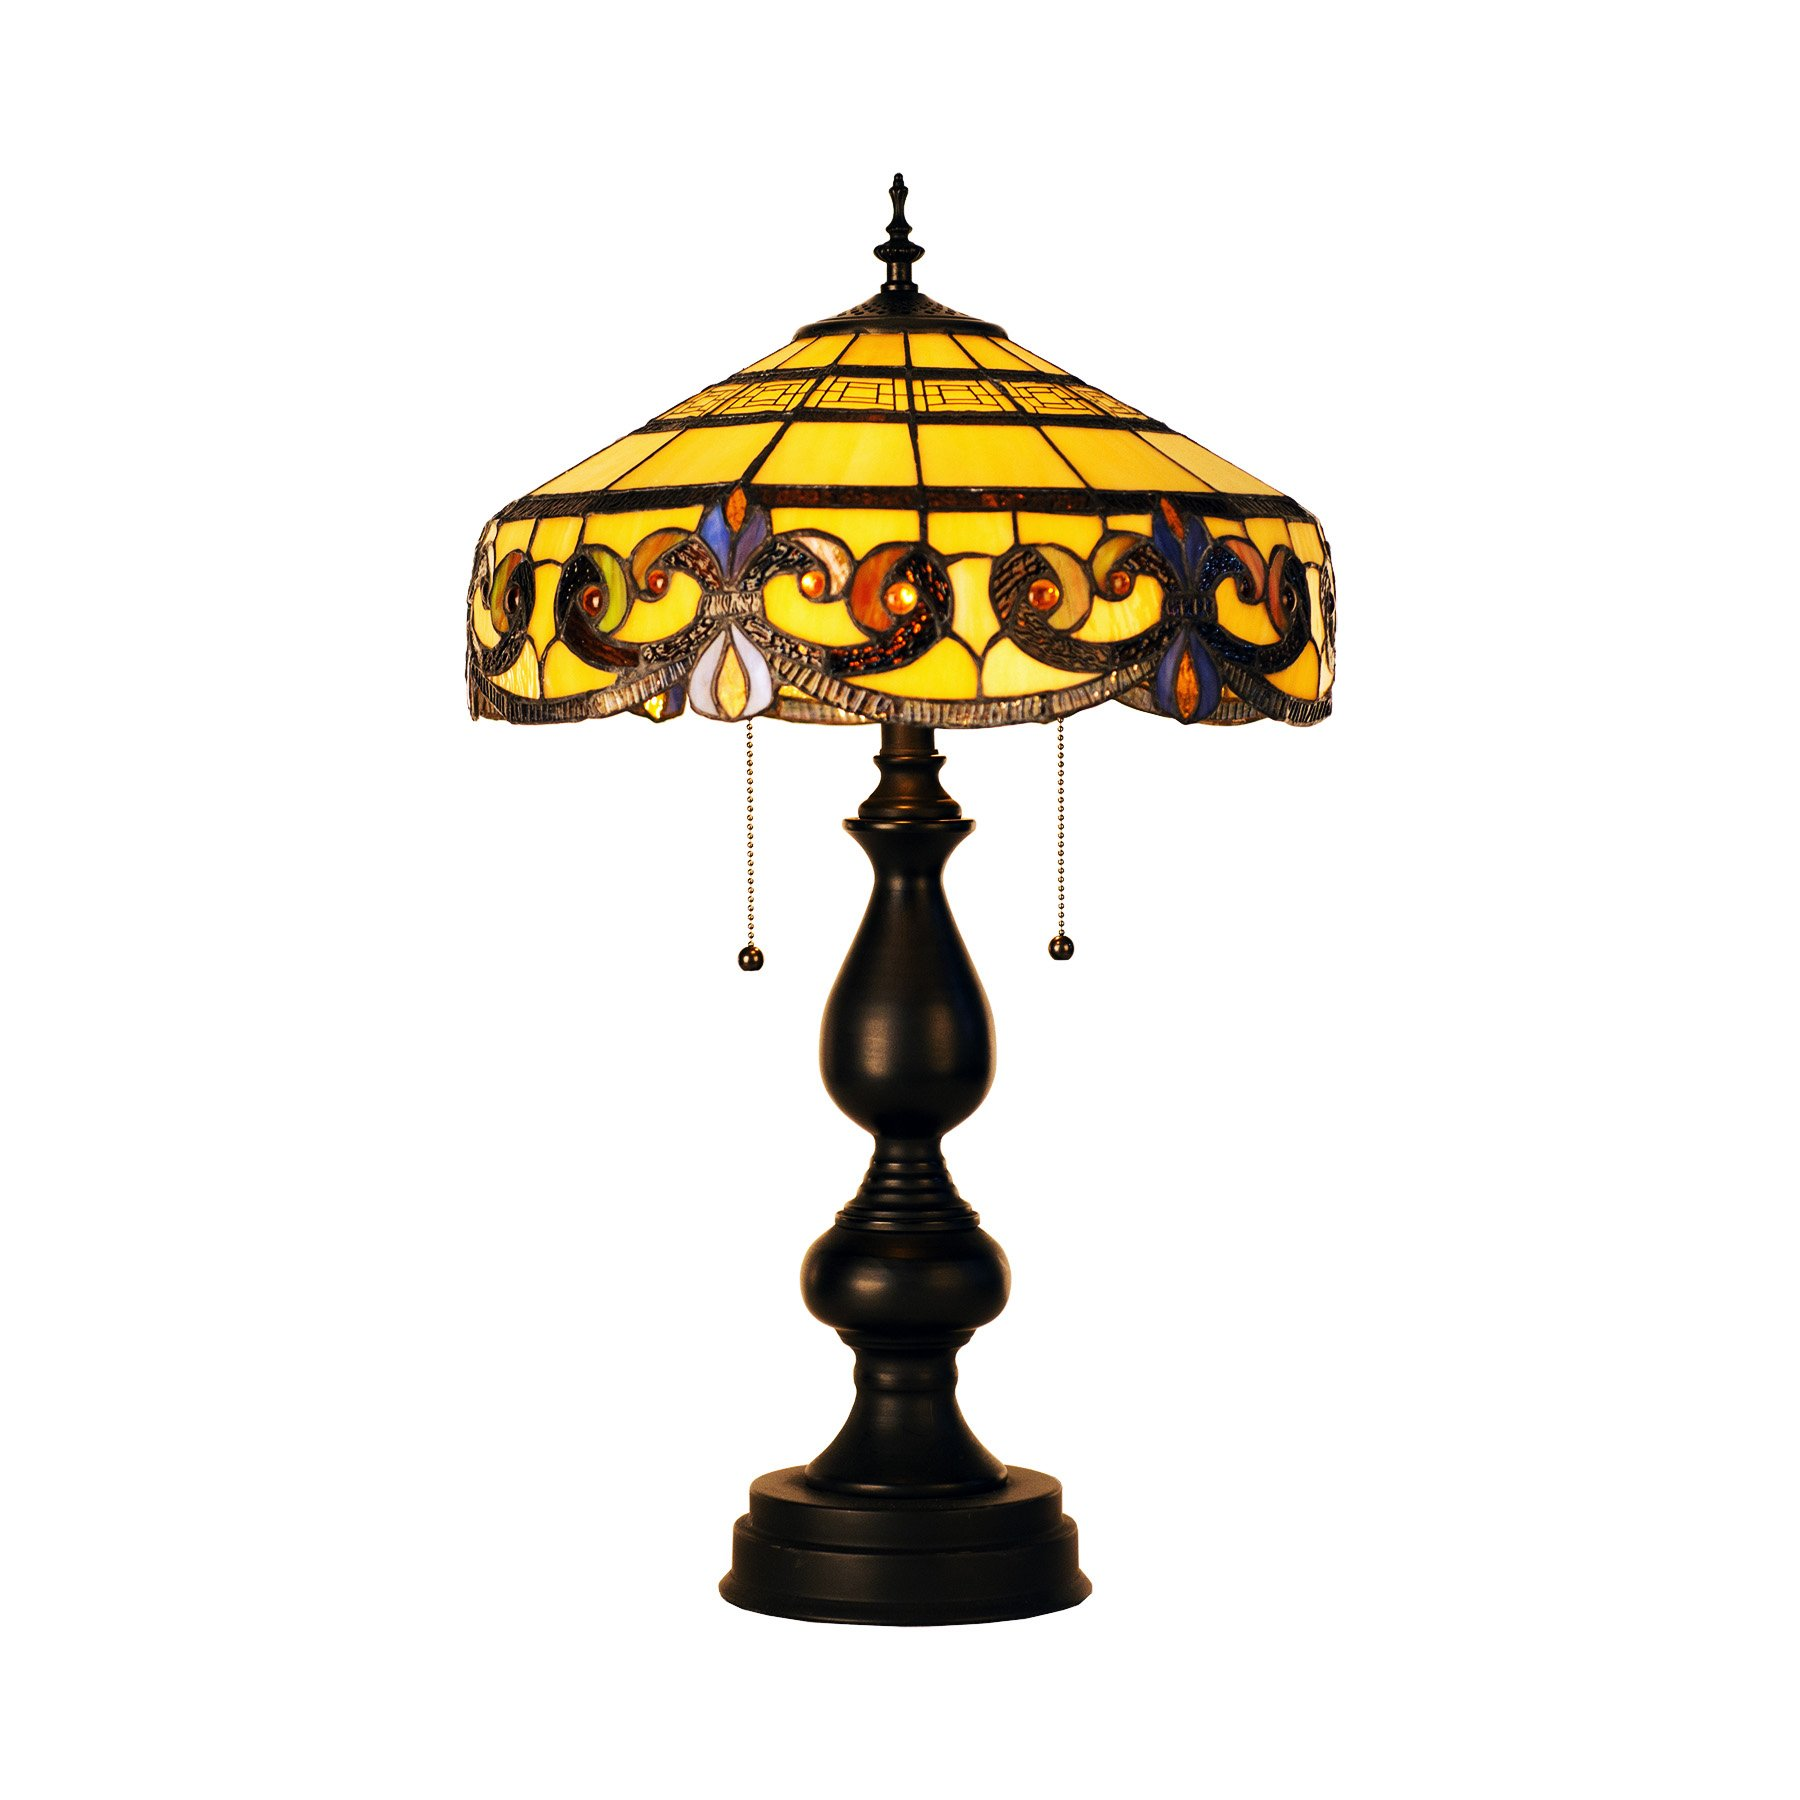 CO-Z Tiffany Style Table Lamps, 2-Light Victorian Desk Lamp with 16 Inches Stained Glass Shade, 25.5 Inches Height